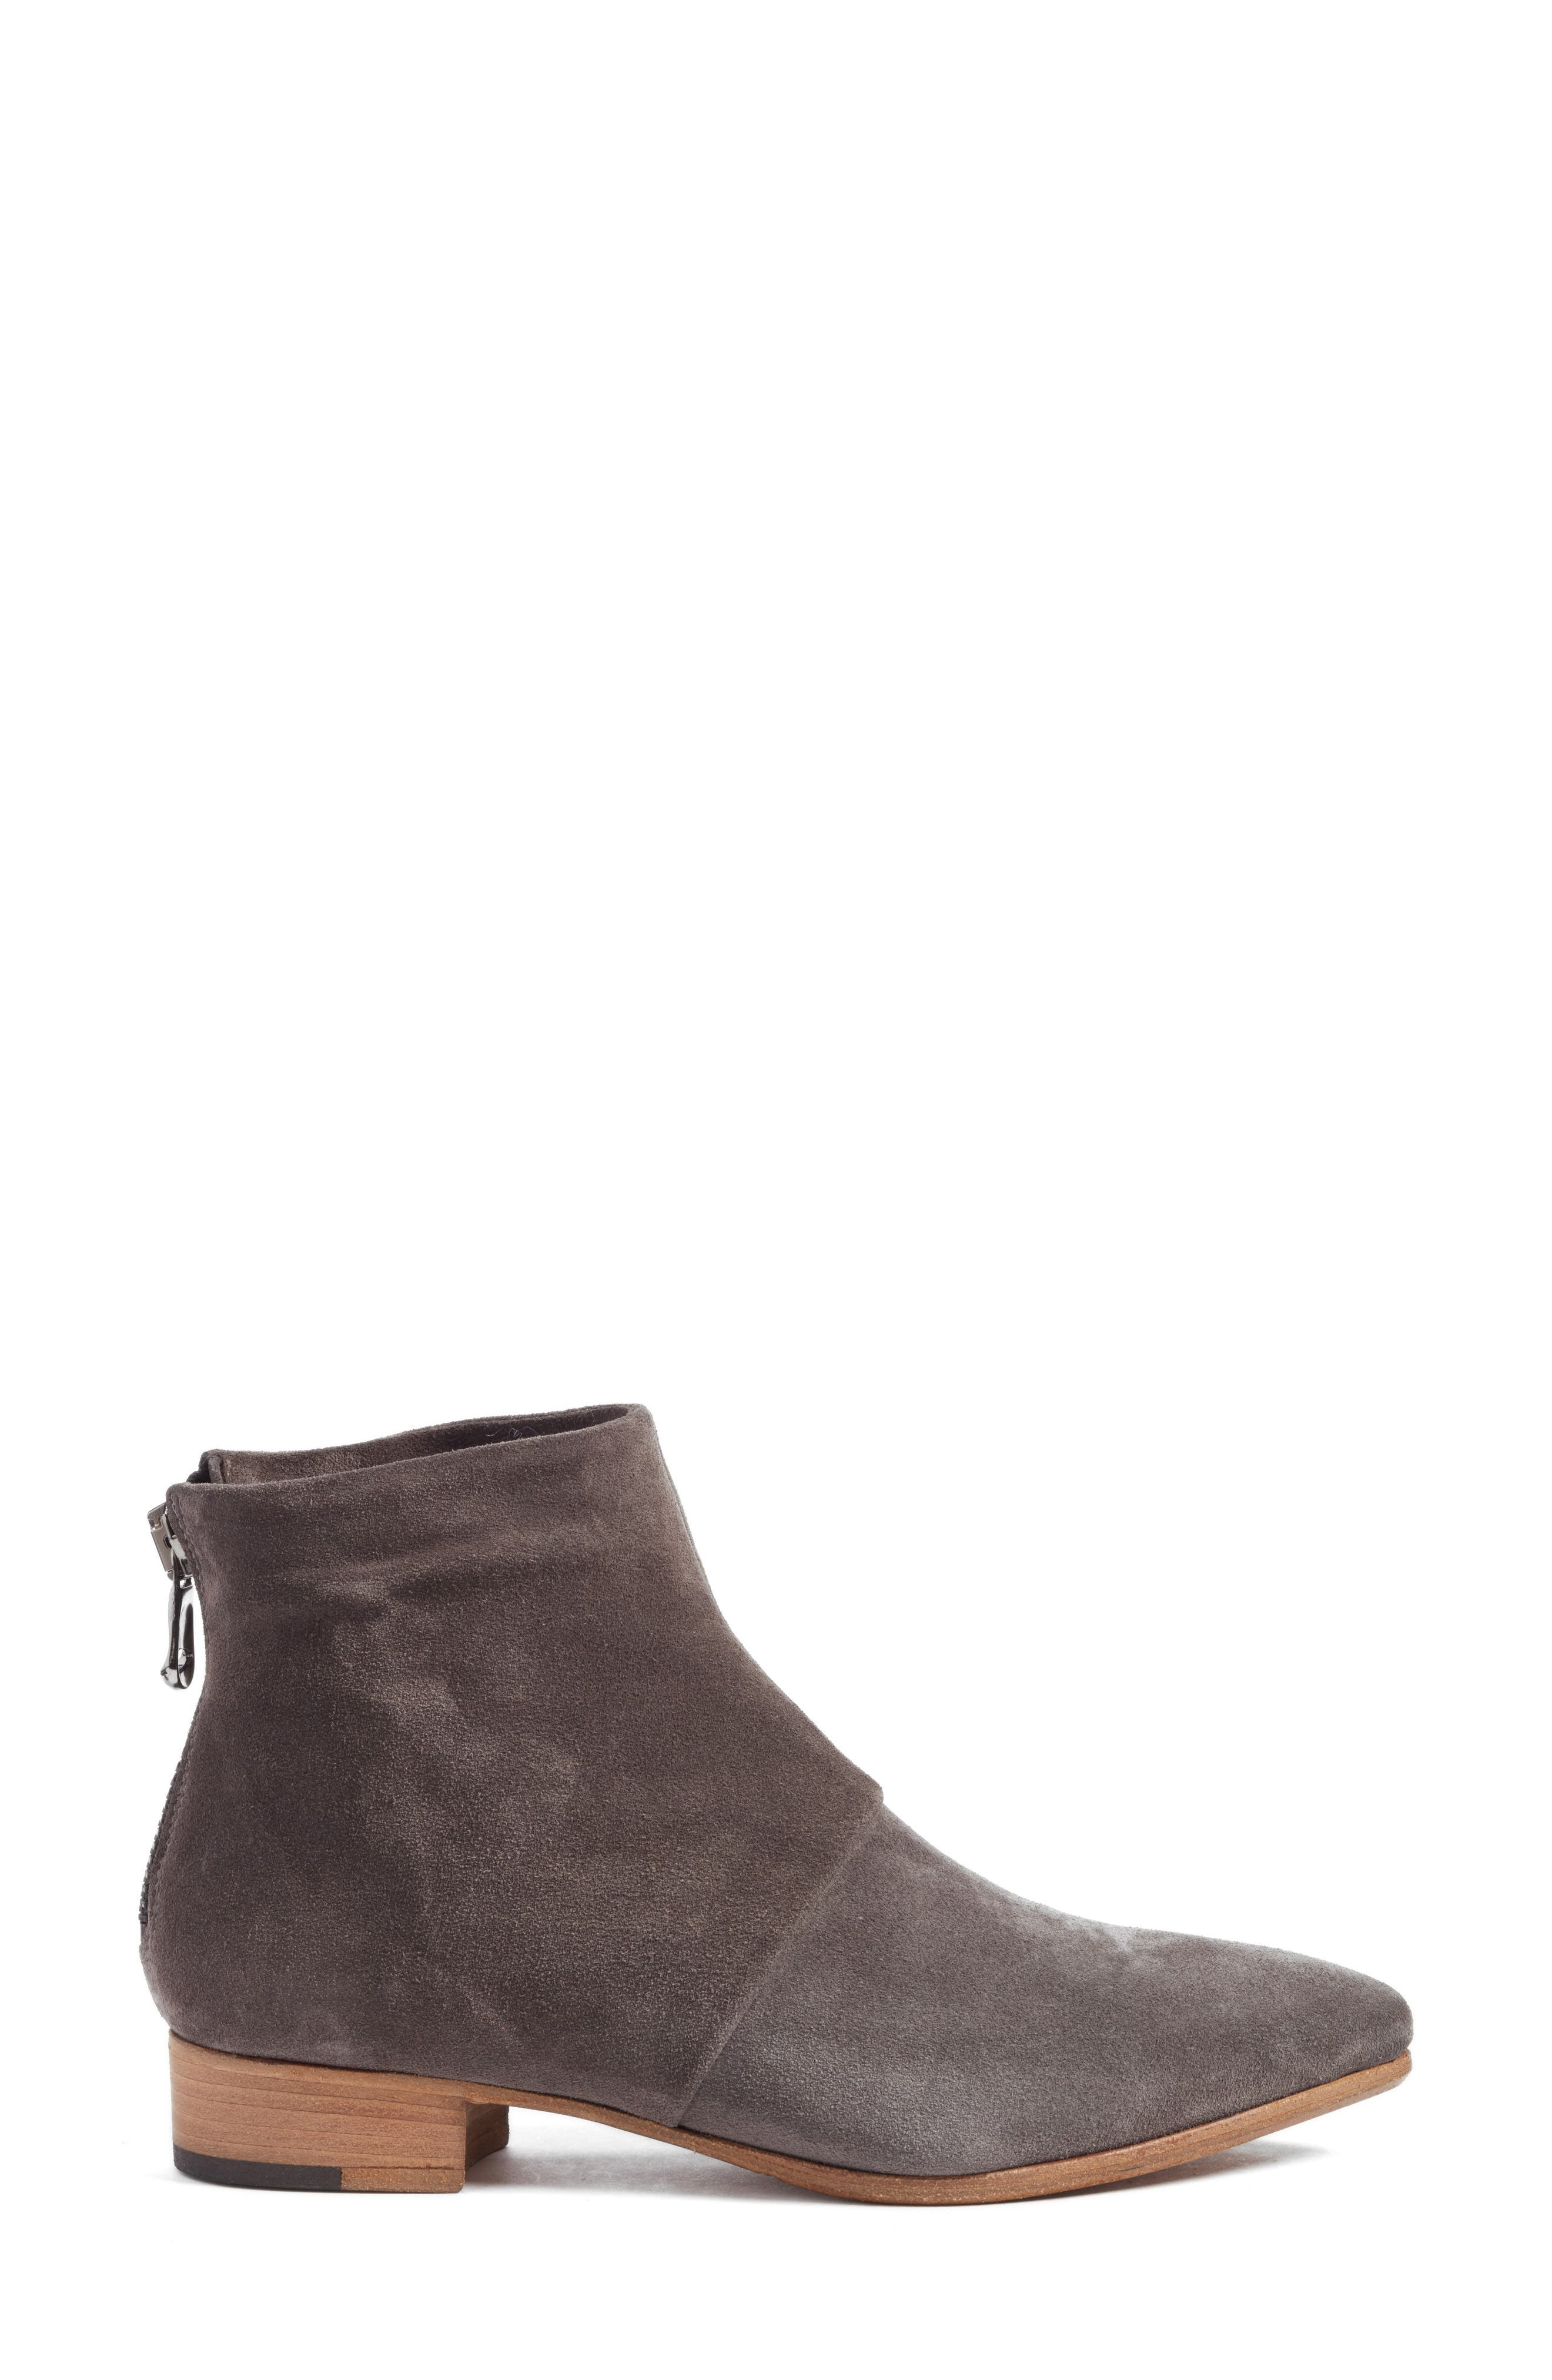 Bellina Mid Top Bootie,                             Alternate thumbnail 3, color,